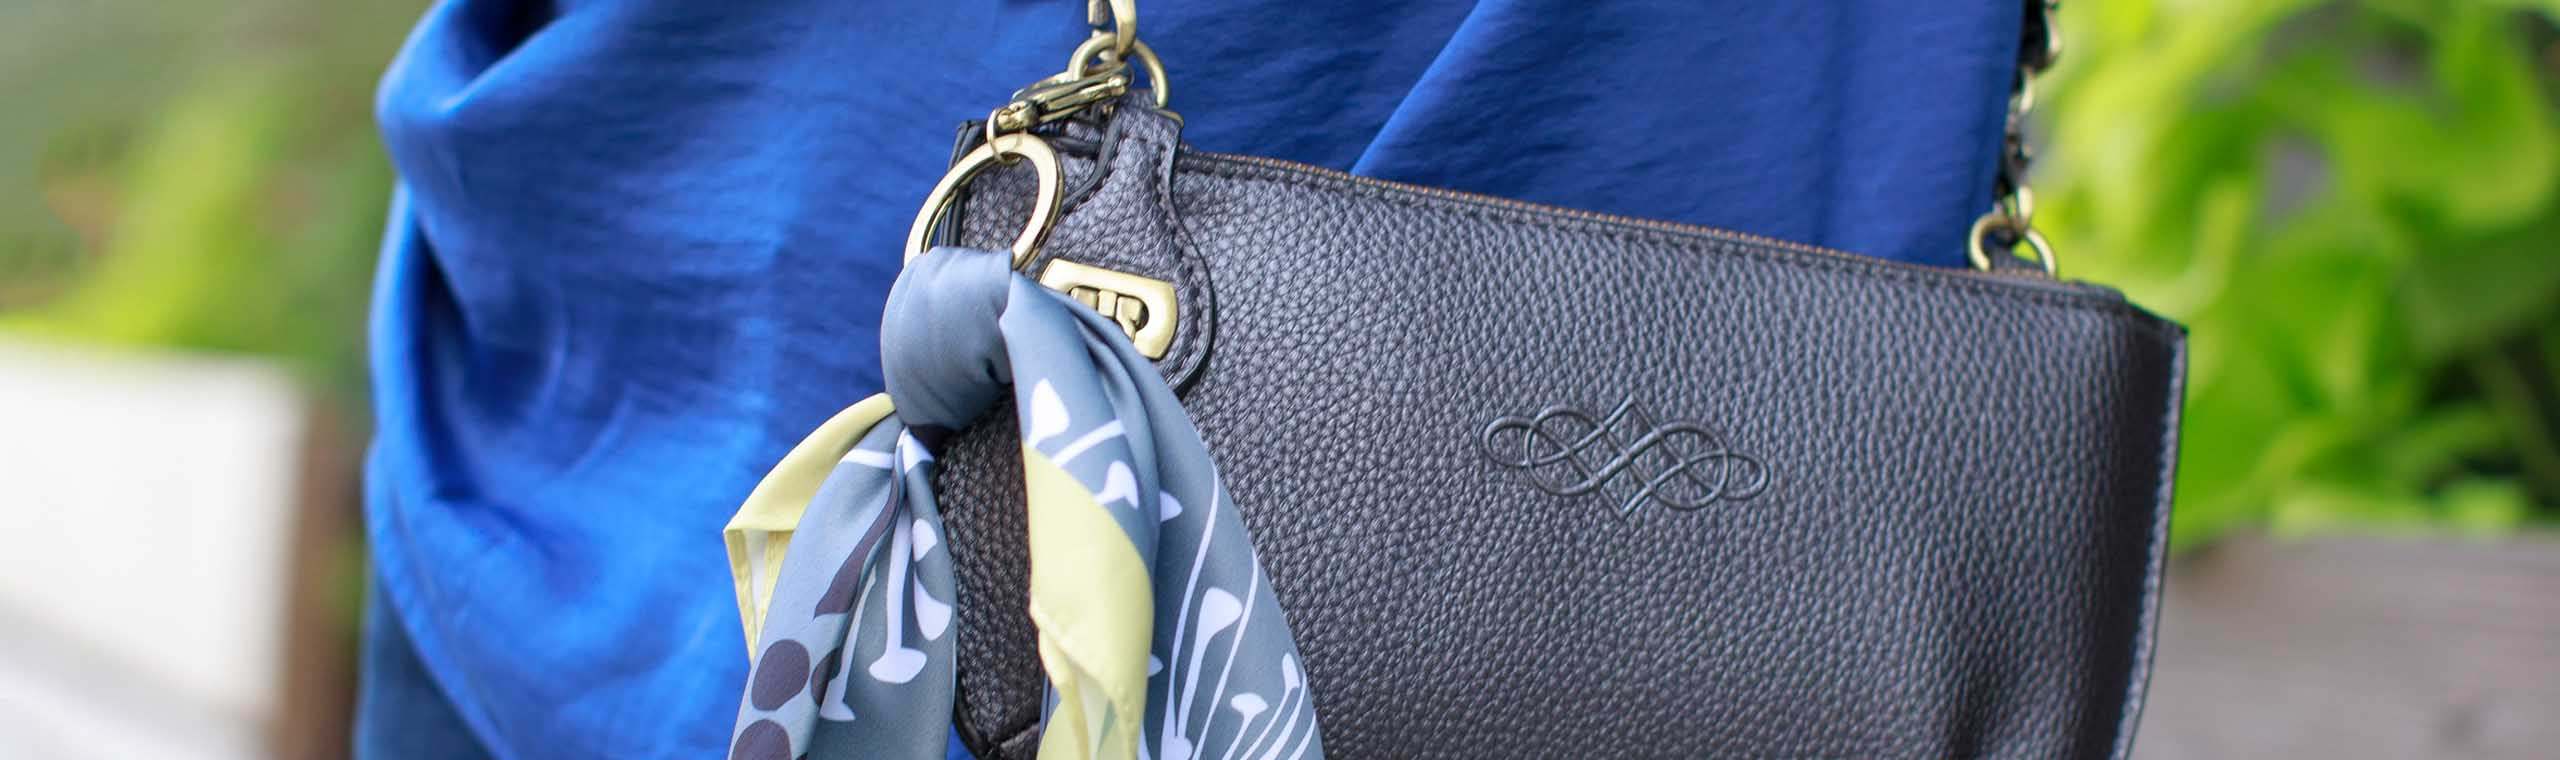 Small scarf clipped onto leather purse